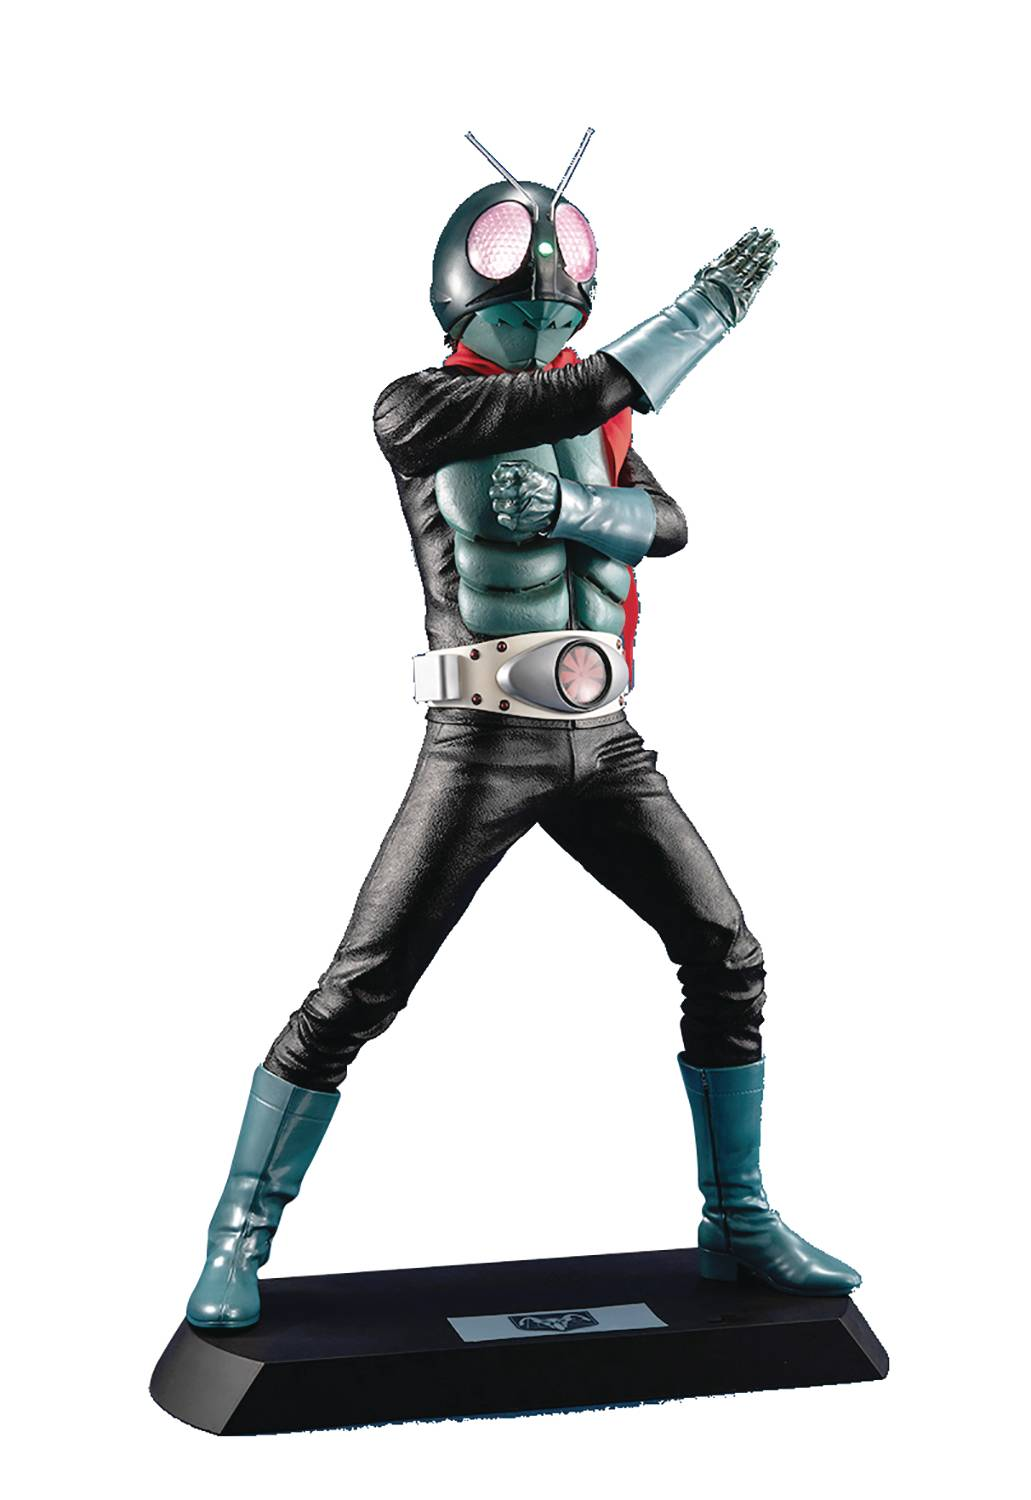 ULTIMATE ARTICLE MASKED RIDER ORIGINAL NO 1 FIGURE